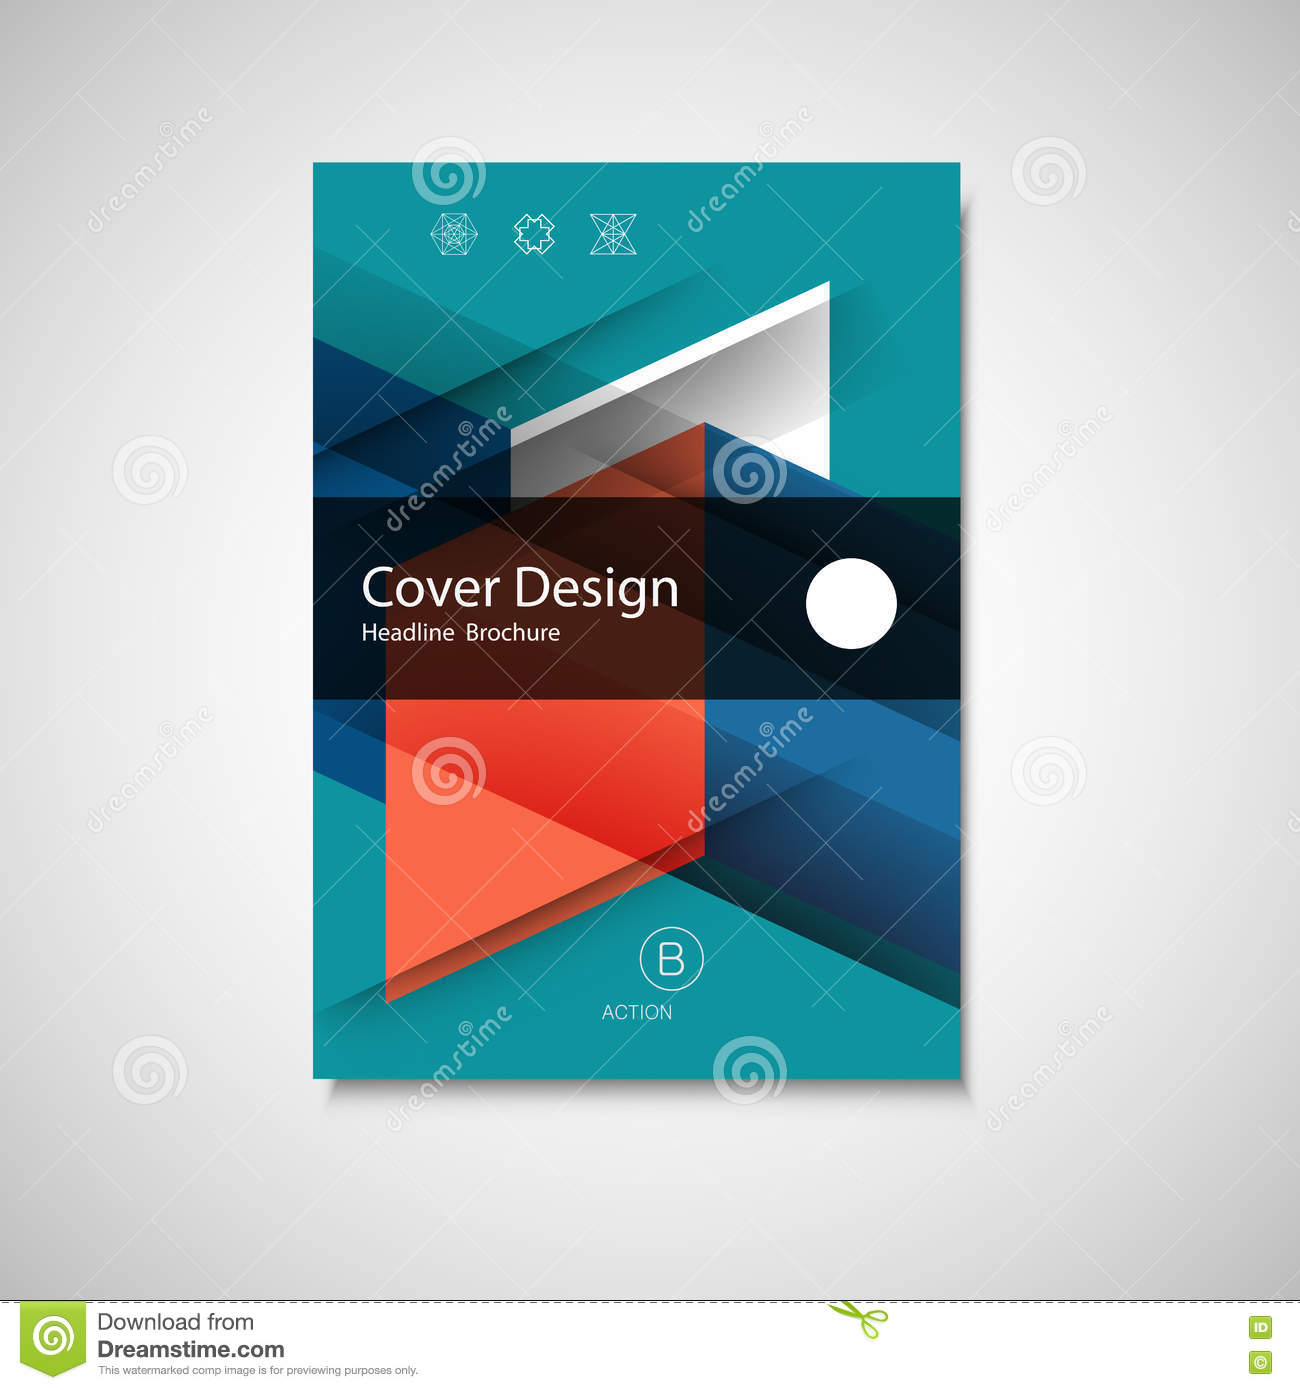 latex book cover template - style template abstract background book cover cartoon